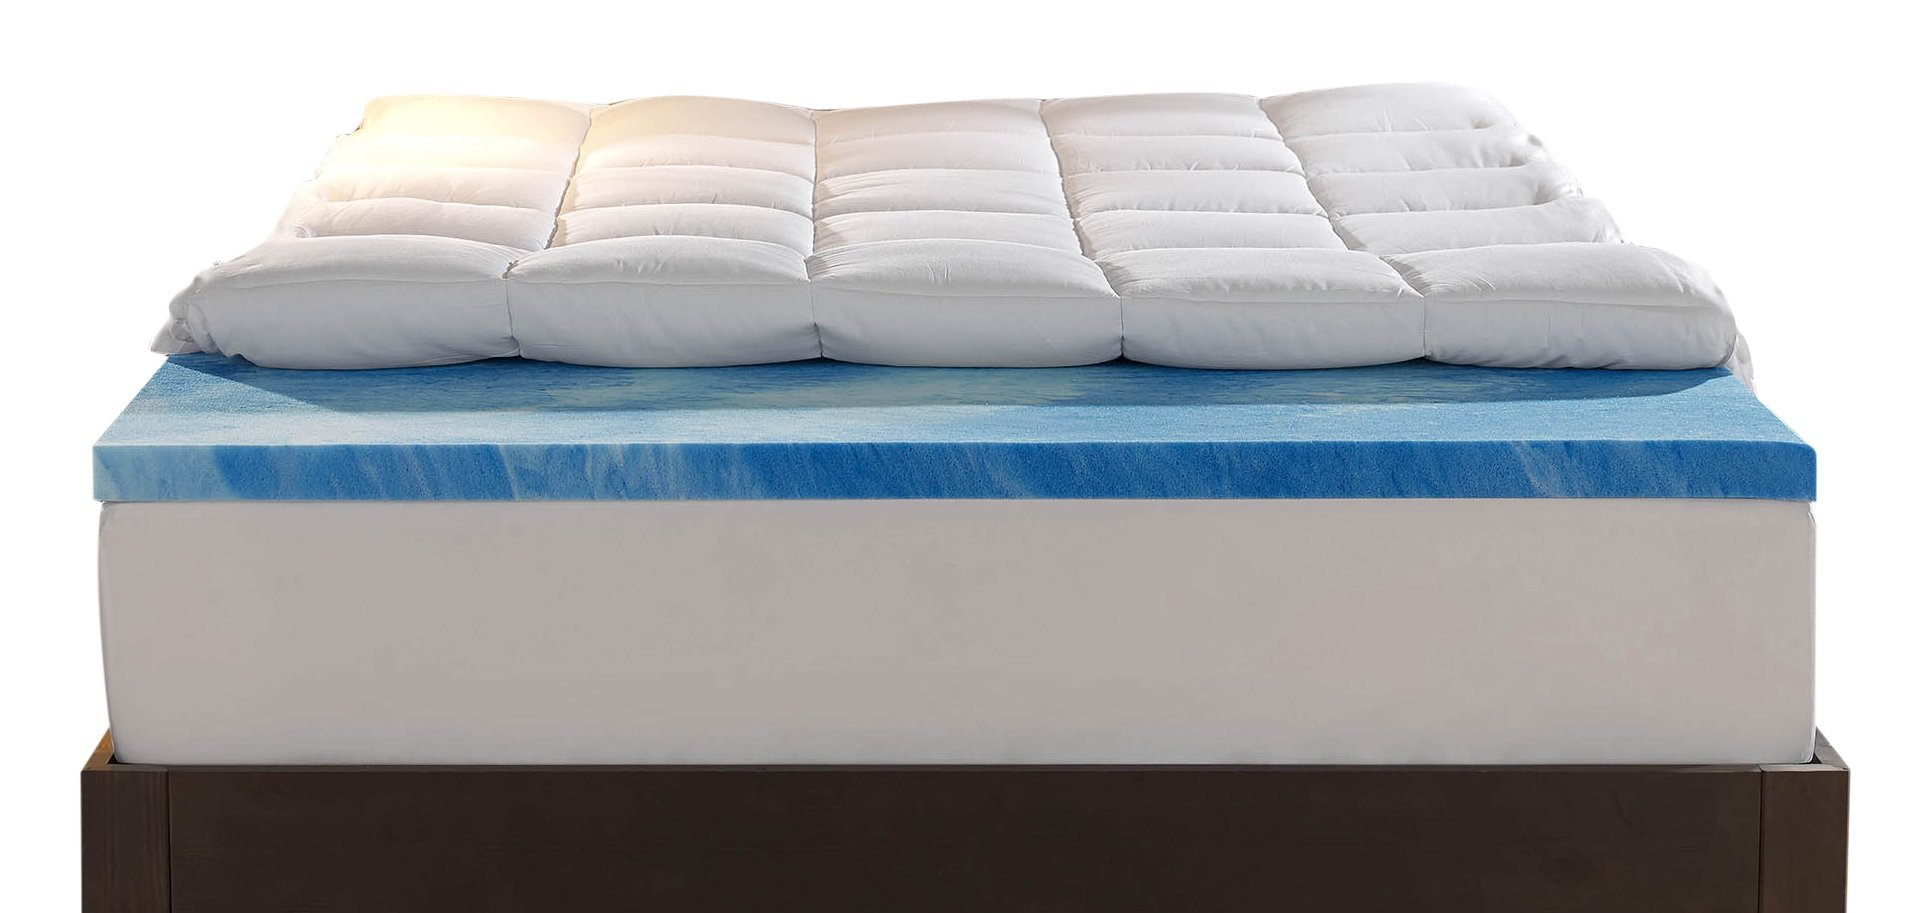 Sleep Innovations Gel Memory Foam 4-inch Dual Layer Mattress Topper, Made in The USA with a 10-Year Warranty - Queen Size by Sleep Innovations